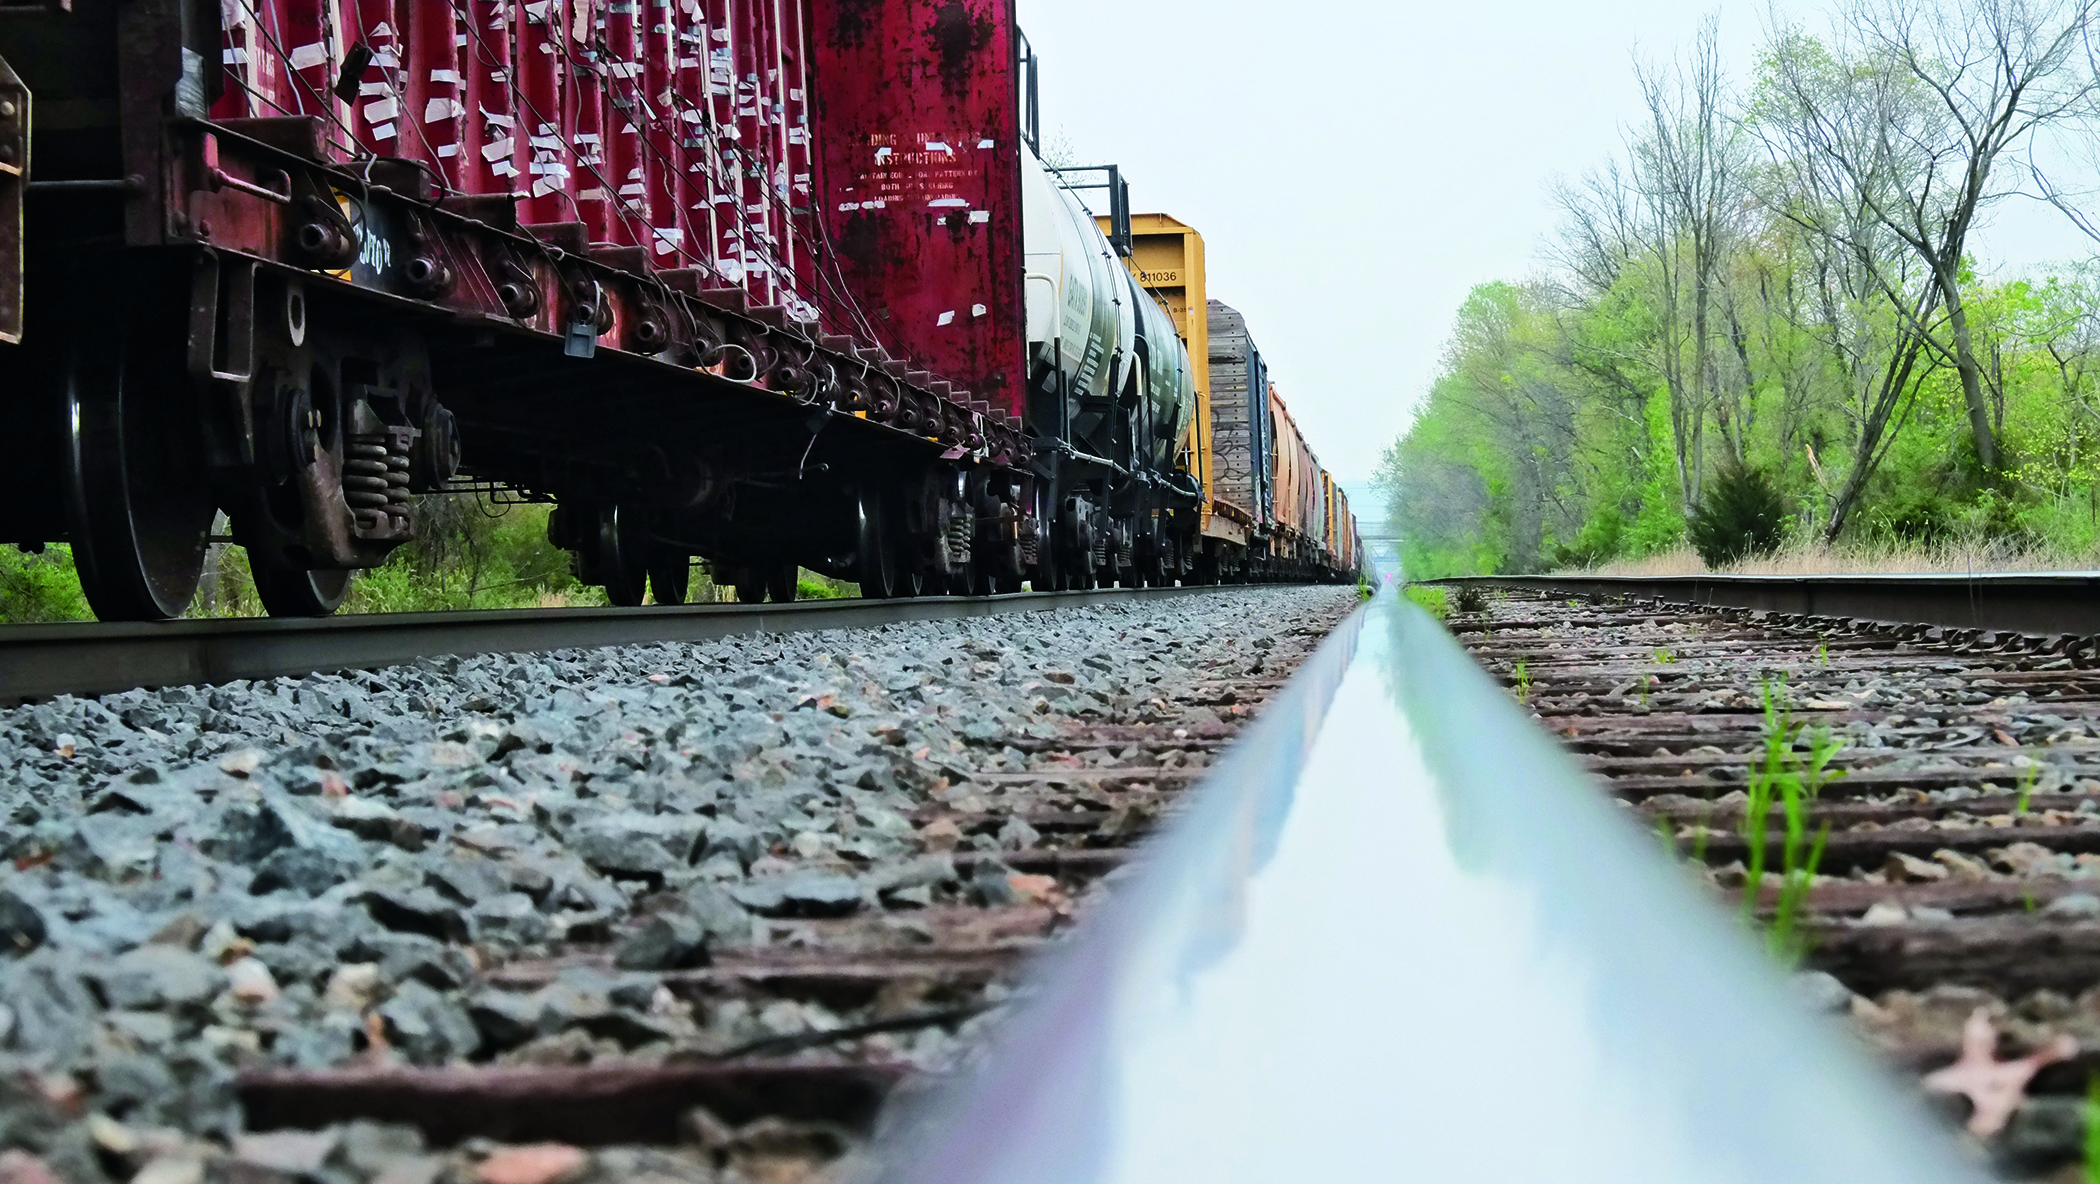 Railfreight-cars_low-POV_track_1005_2100px.jpg